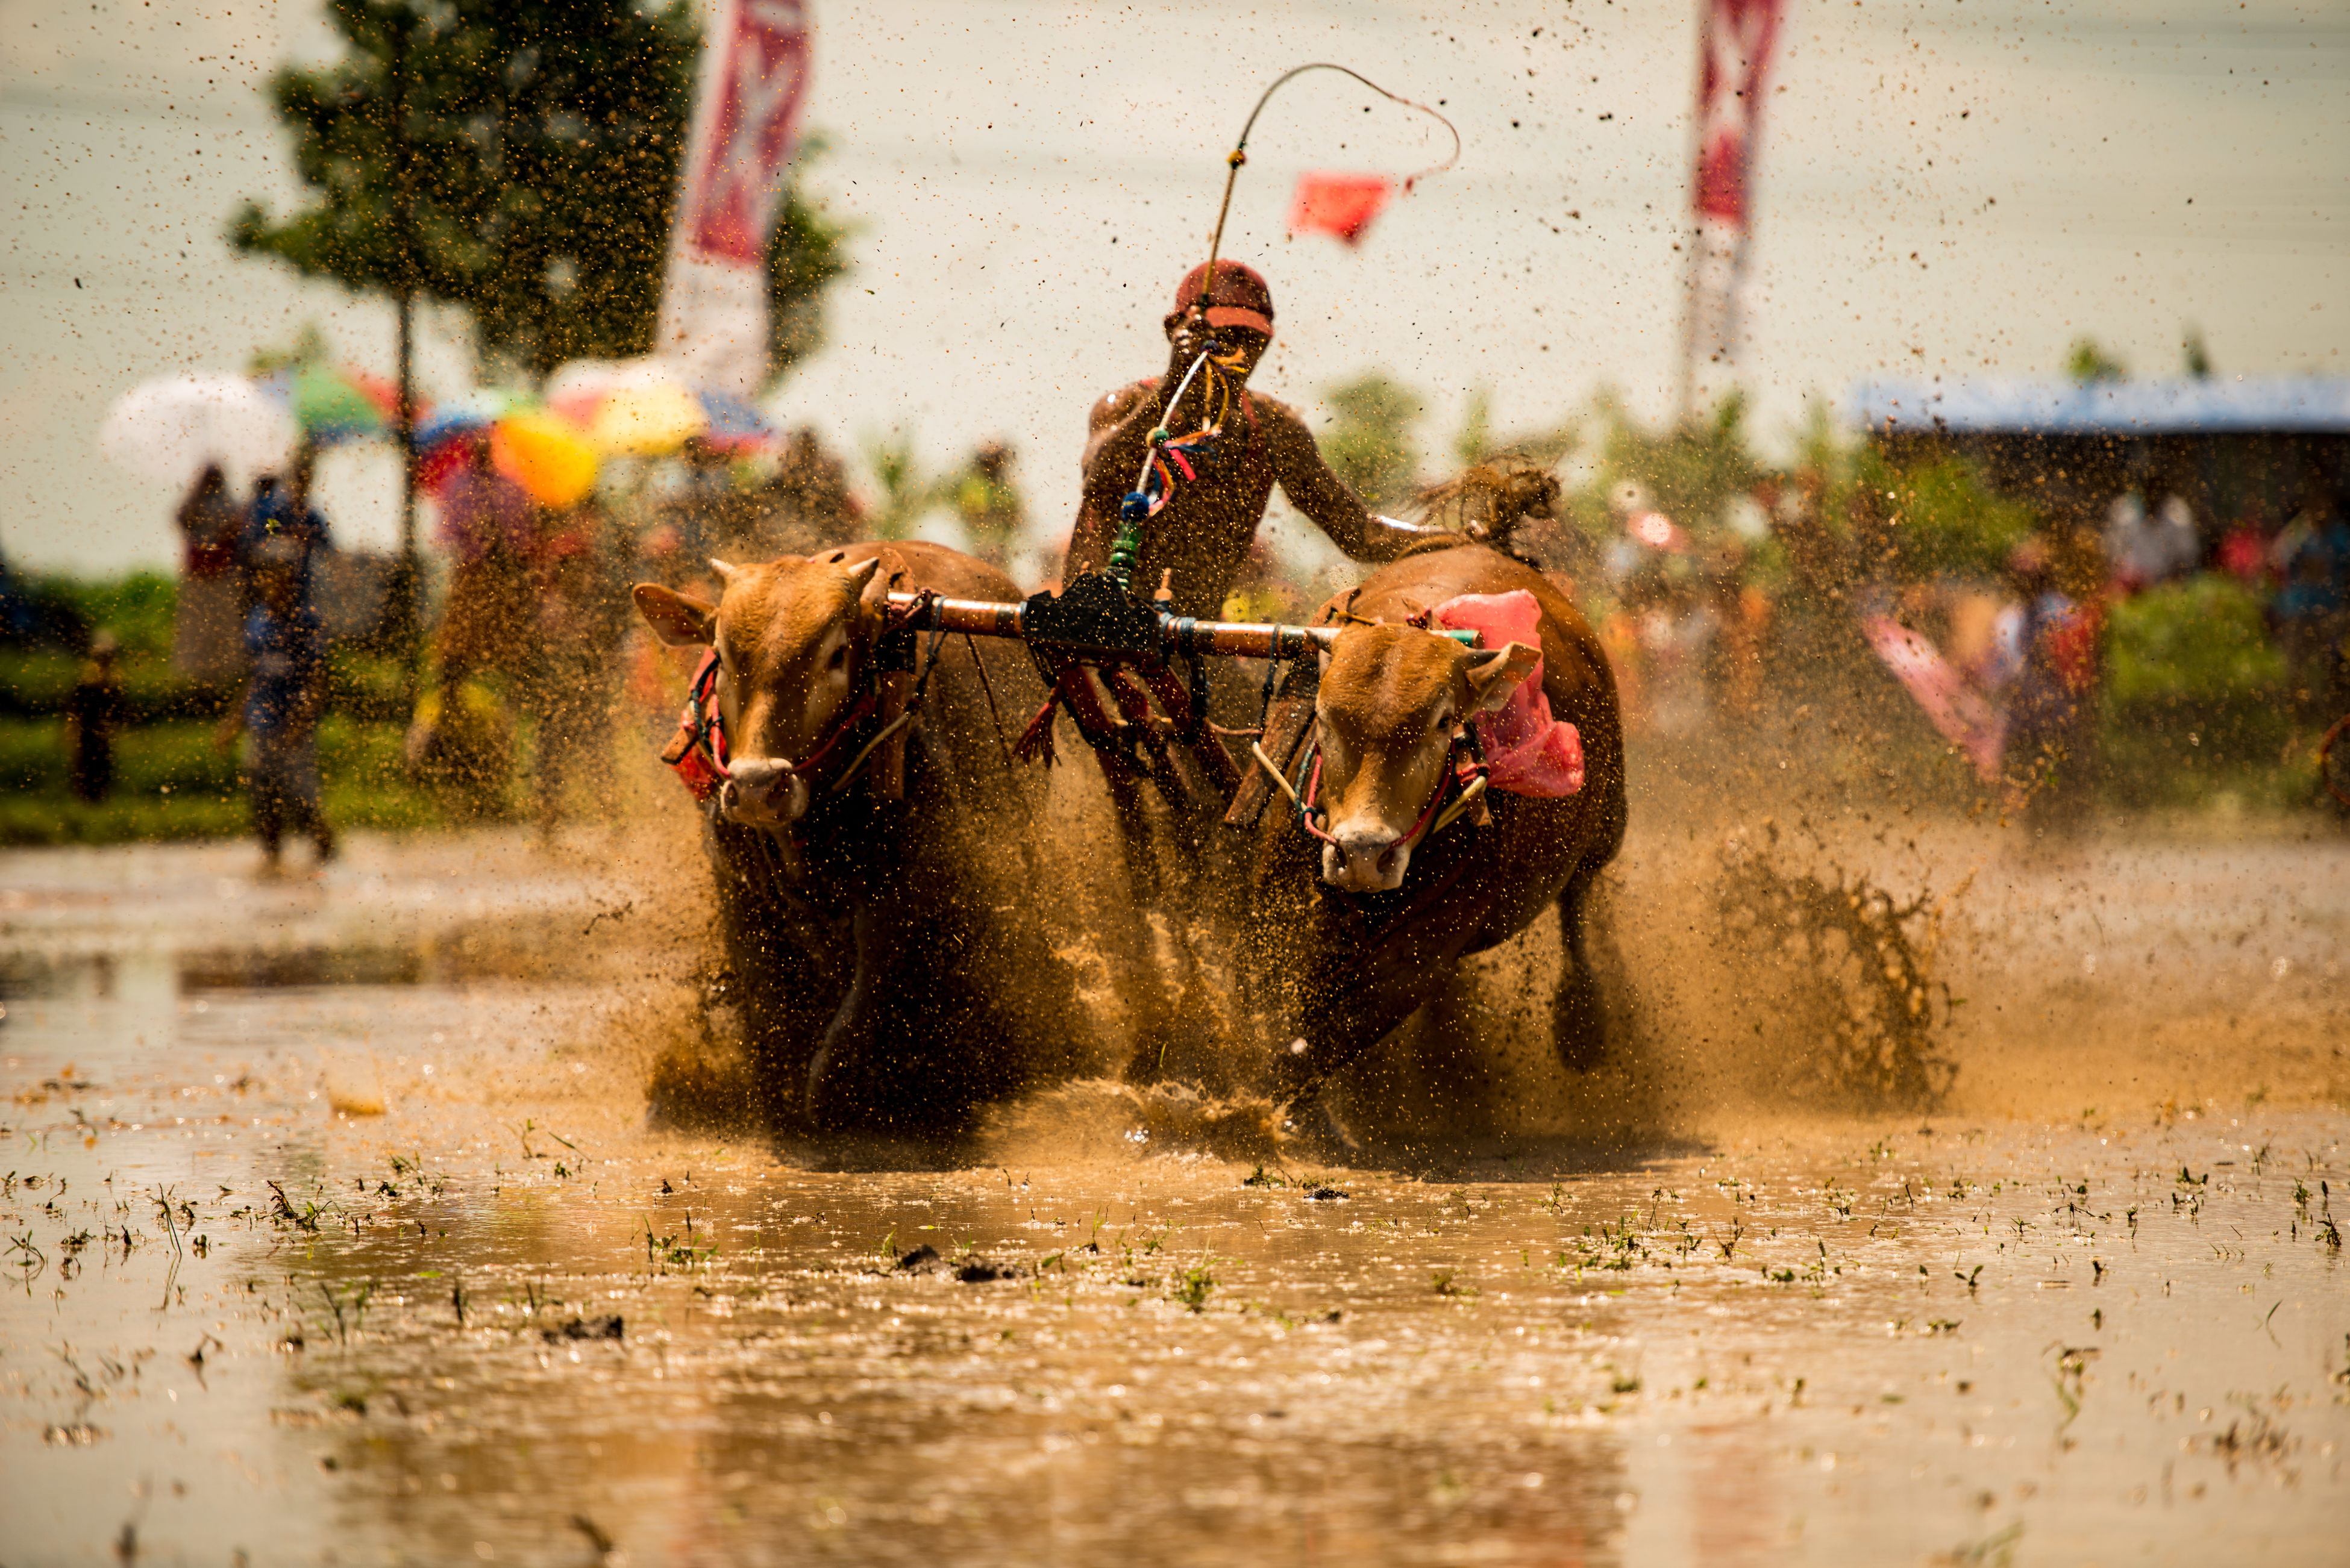 sports race, riding, speed, competition, splashing, water, running, motion, fun, gambling, excitement, sport, horse racing, adult, mammal, sports track, people, competitive sport, men, domestic animals, outdoors, day, only men, sports team, motocross, adults only